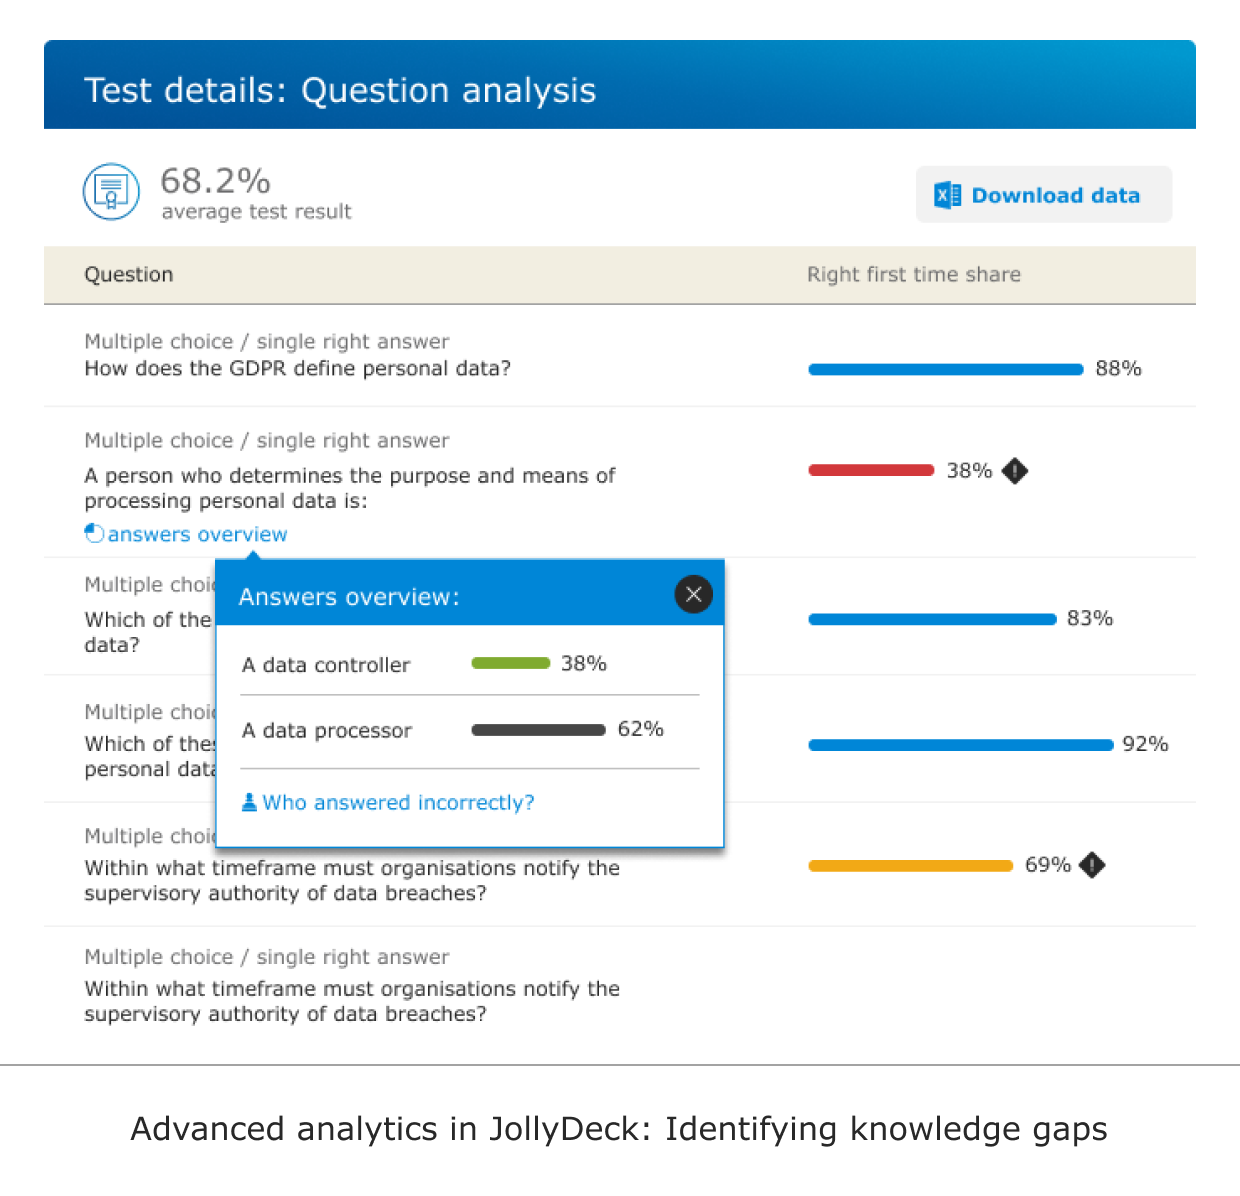 Advanced learning analytics in JollyDeck: Identifying knowledge gaps